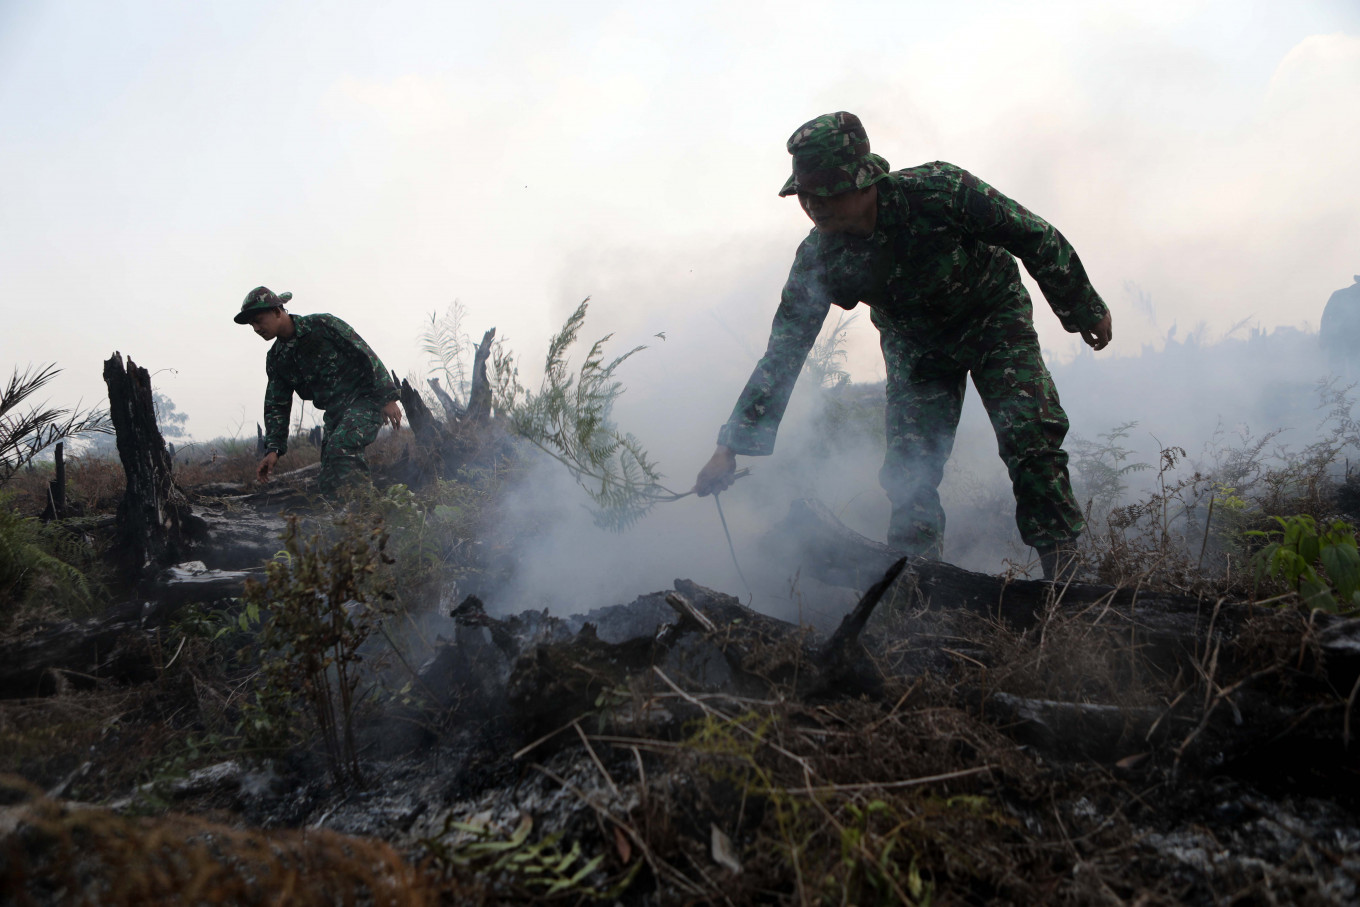 Adverse effects: In 2015, Indonesia experienced massive and severe fires for most of the year. The World Bank reported in February 2016 that at least 2.6 million hectares of land (mostly peatland) had caught fire that year in just five months, from June to October. The economic value of losses was estimated to be US$16.1 billion.